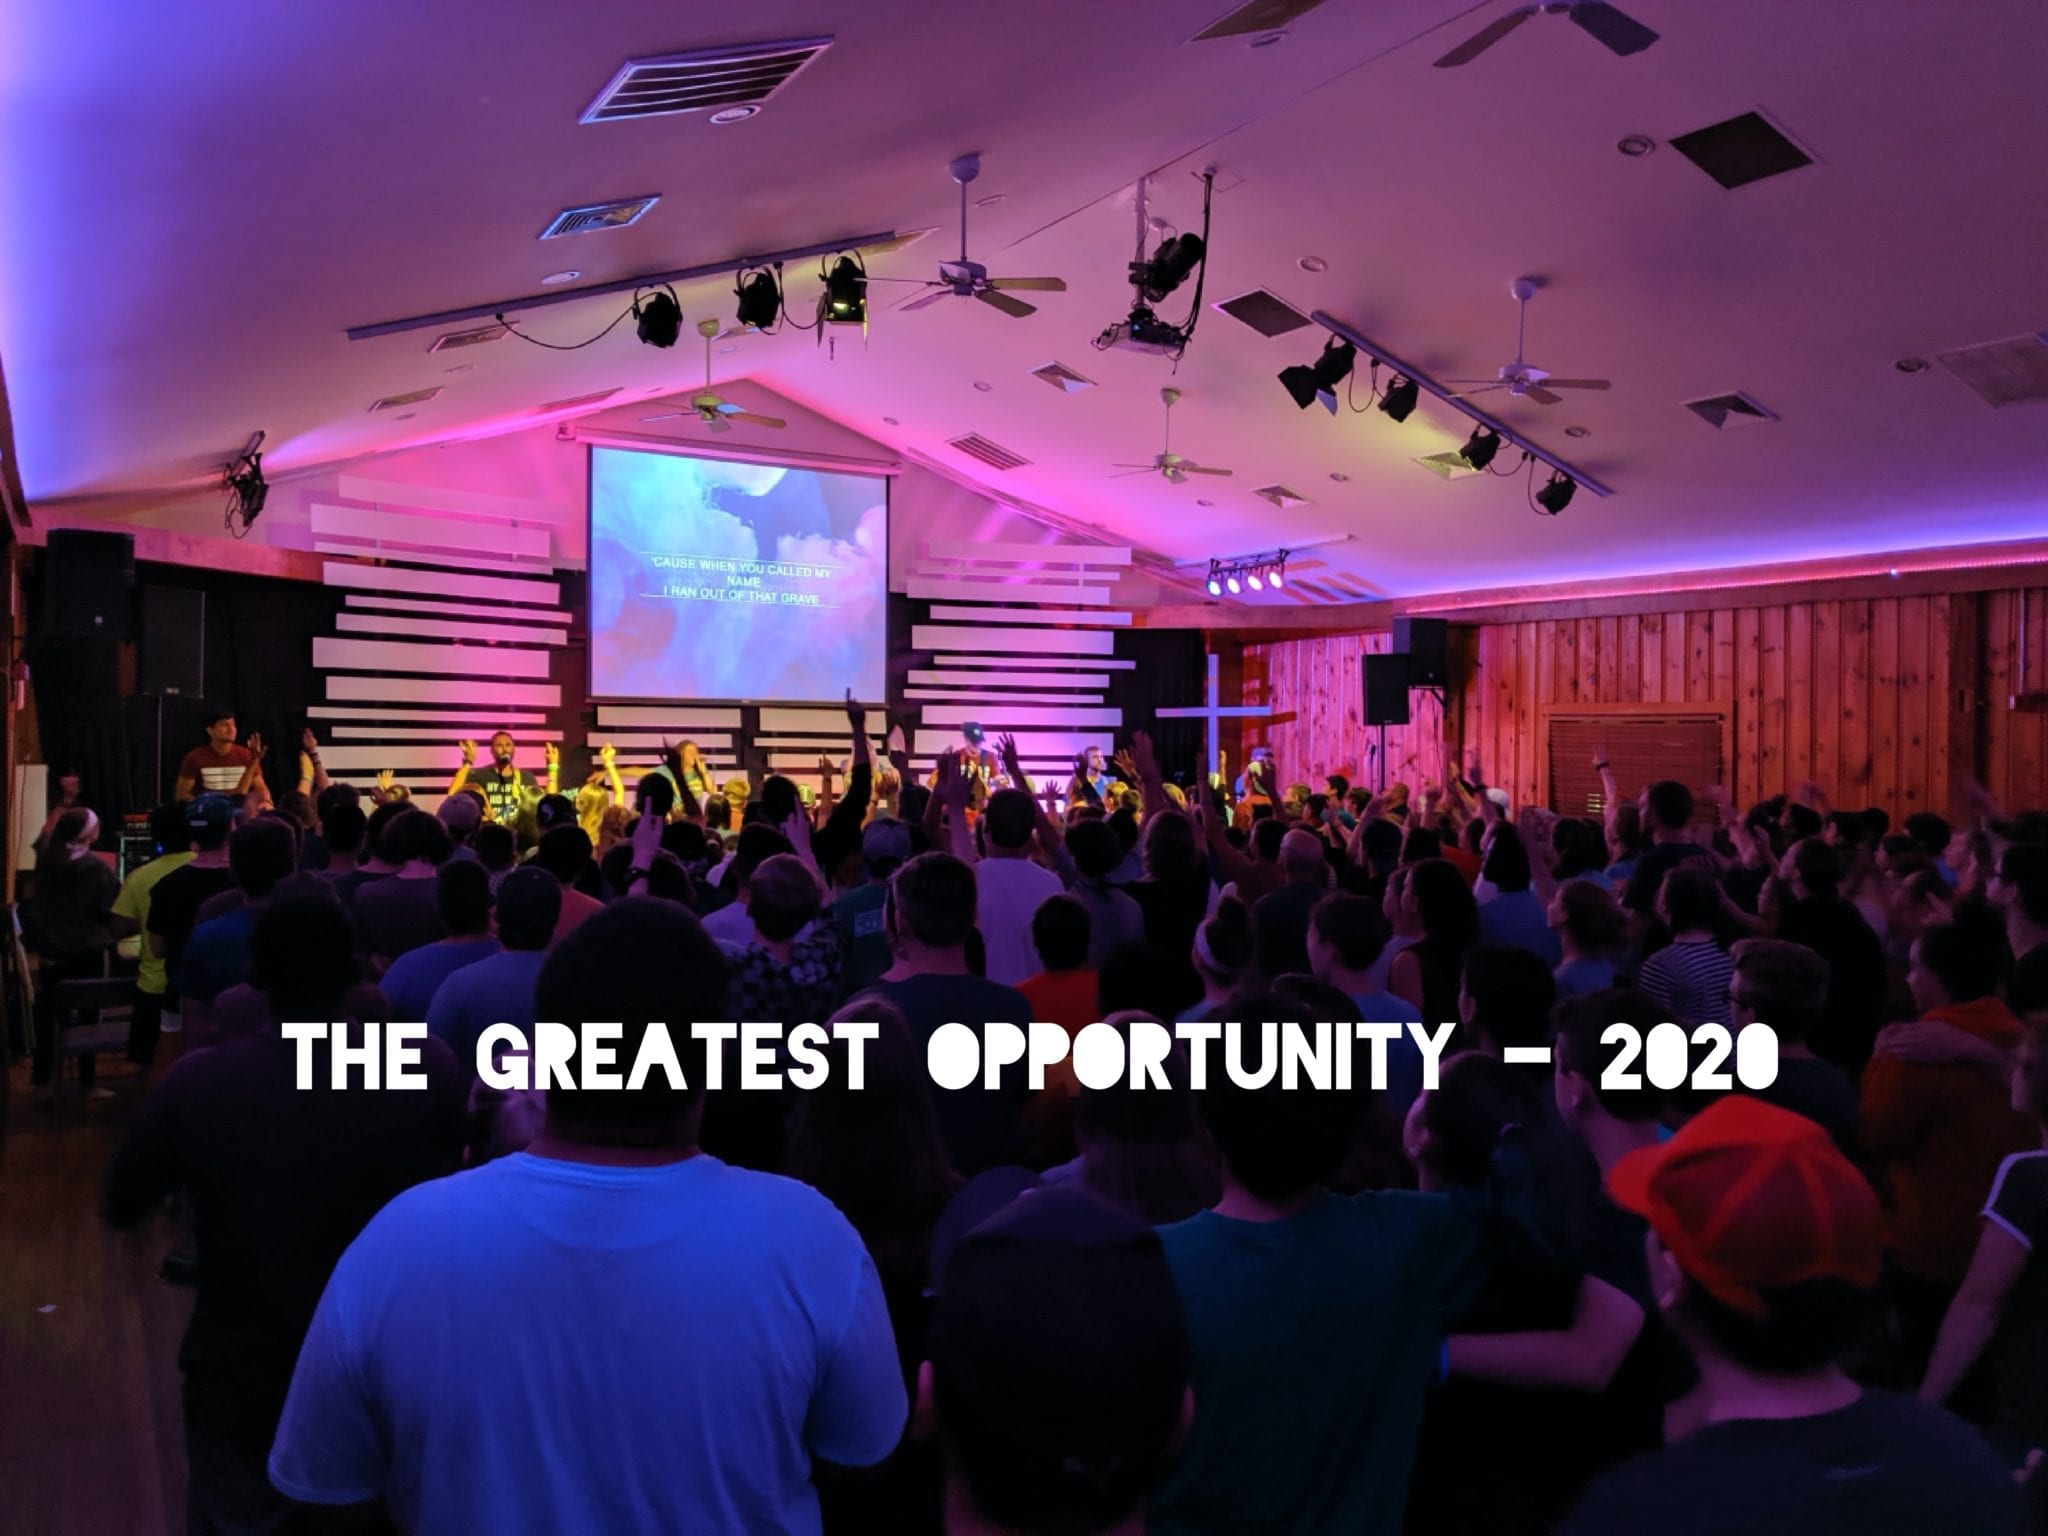 The Greatest Opportunity – A New Years Reflection